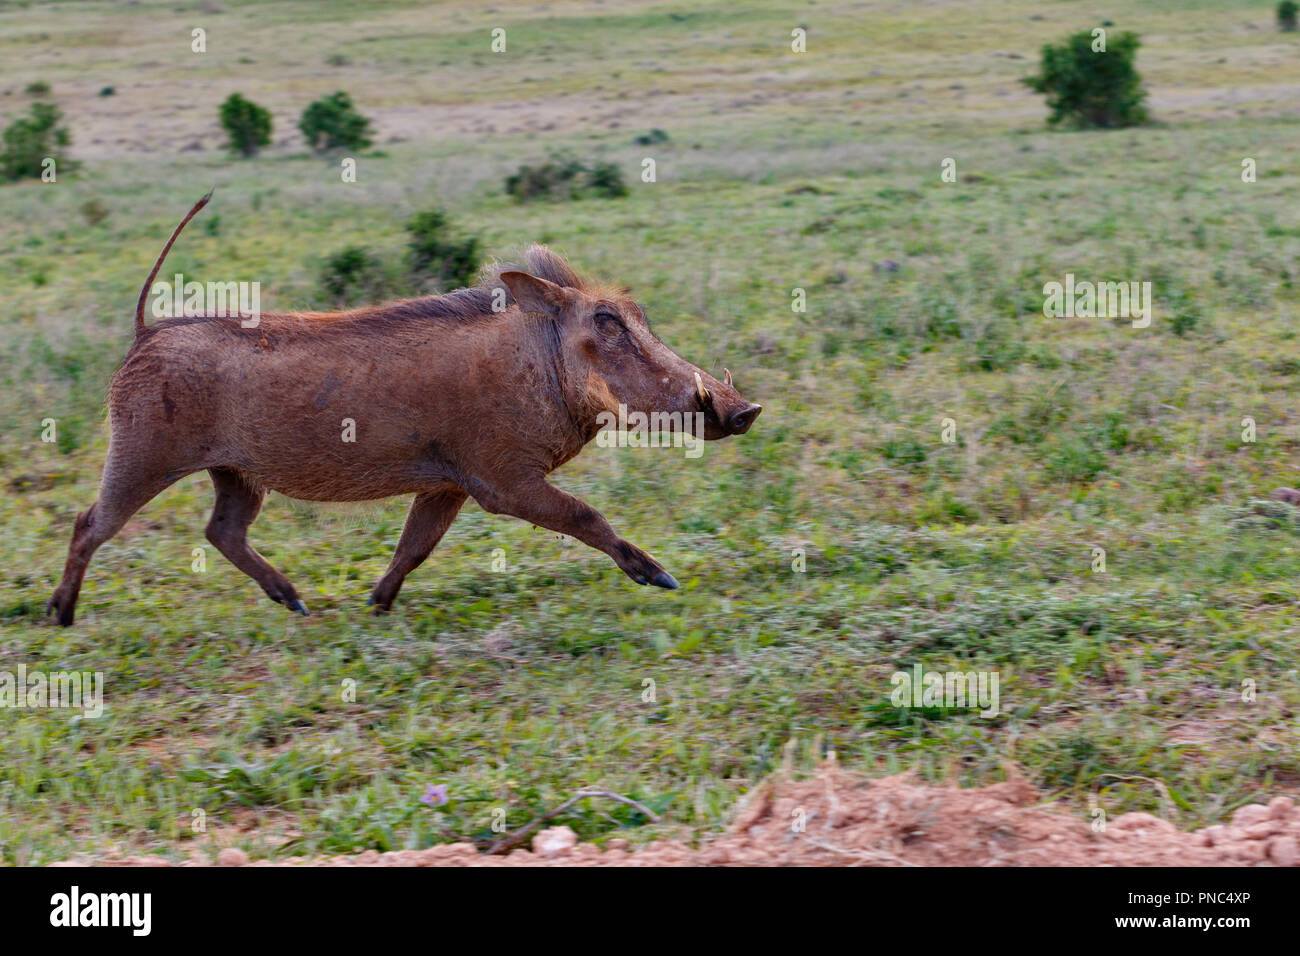 Warthog Meaning Stock Photos & Warthog Meaning Stock Images - Alamy